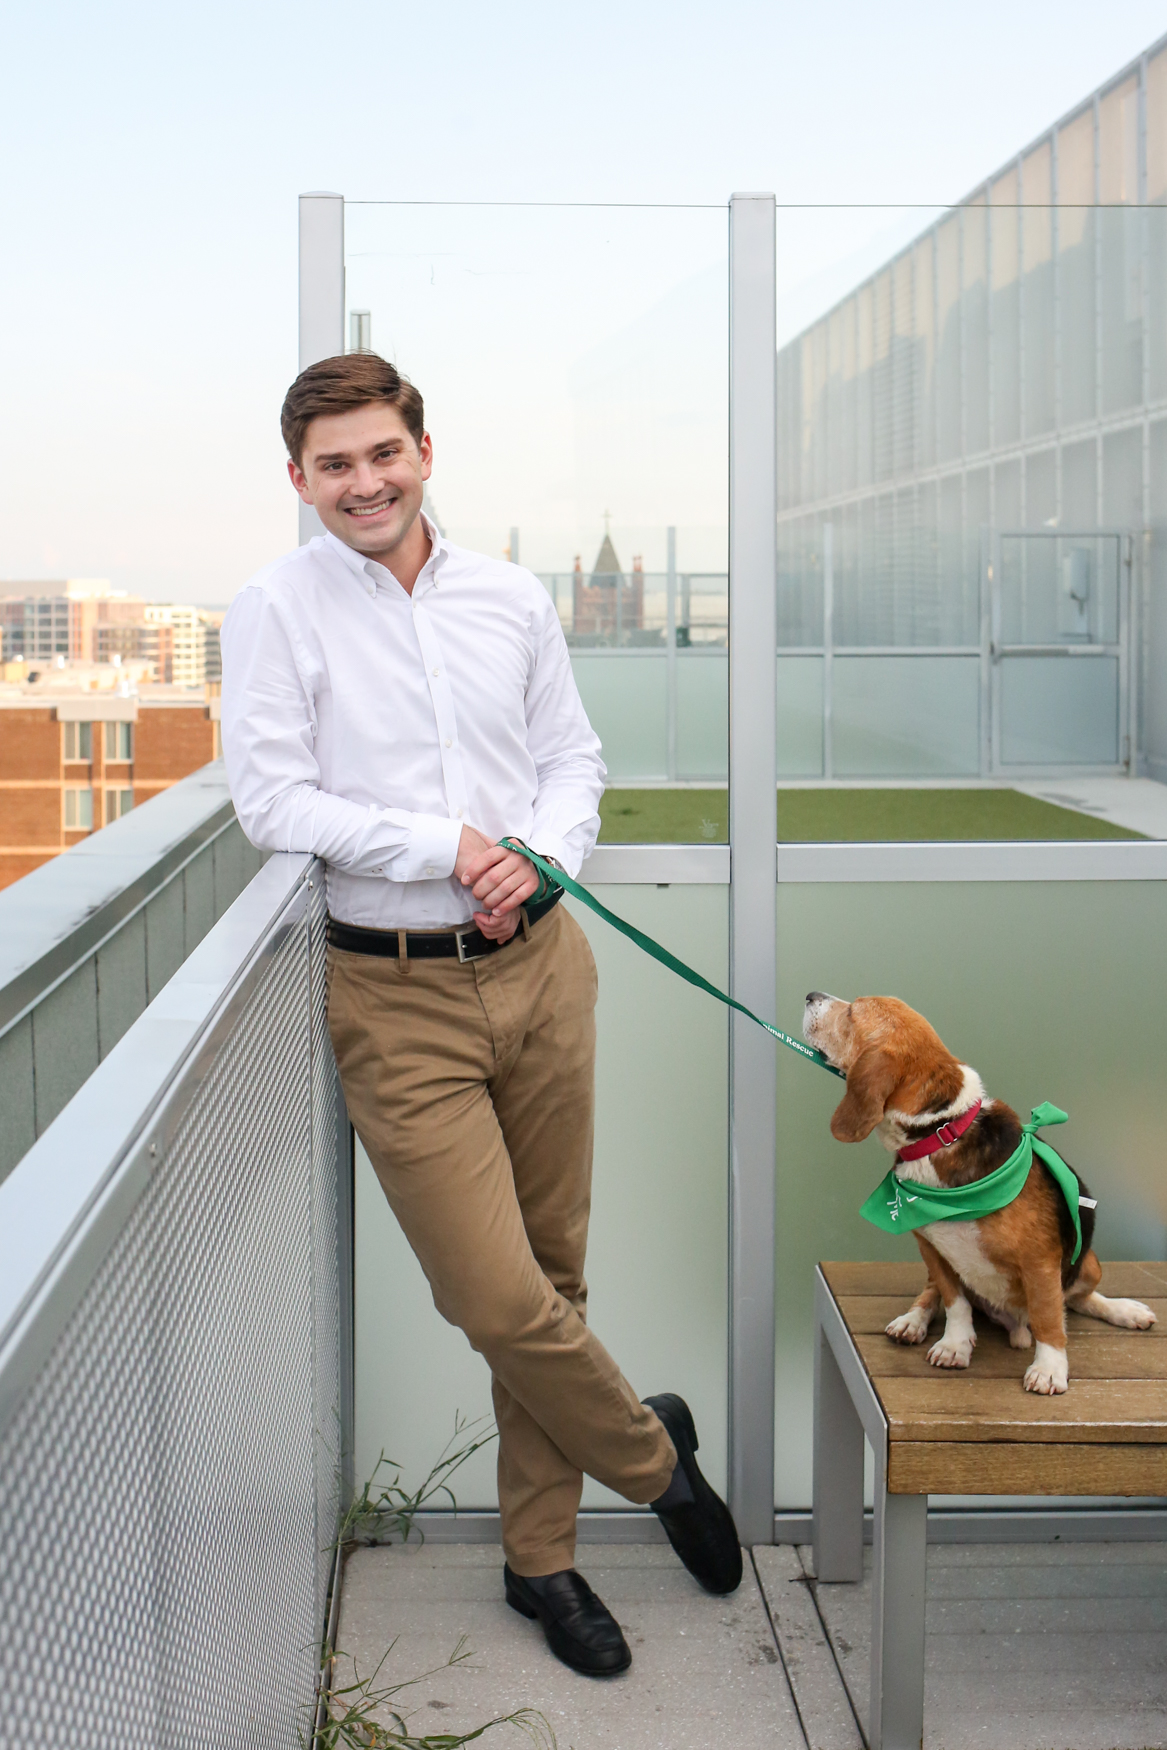 Meet Ranger, a Beagle mix who is approximately 4-5 years old, and David, a 25-year-old human.{ } Photo location: City Market at O Apartments Rooftop Dog Park (Image: Amanda Andrade-Rhoades/ DC Refined)